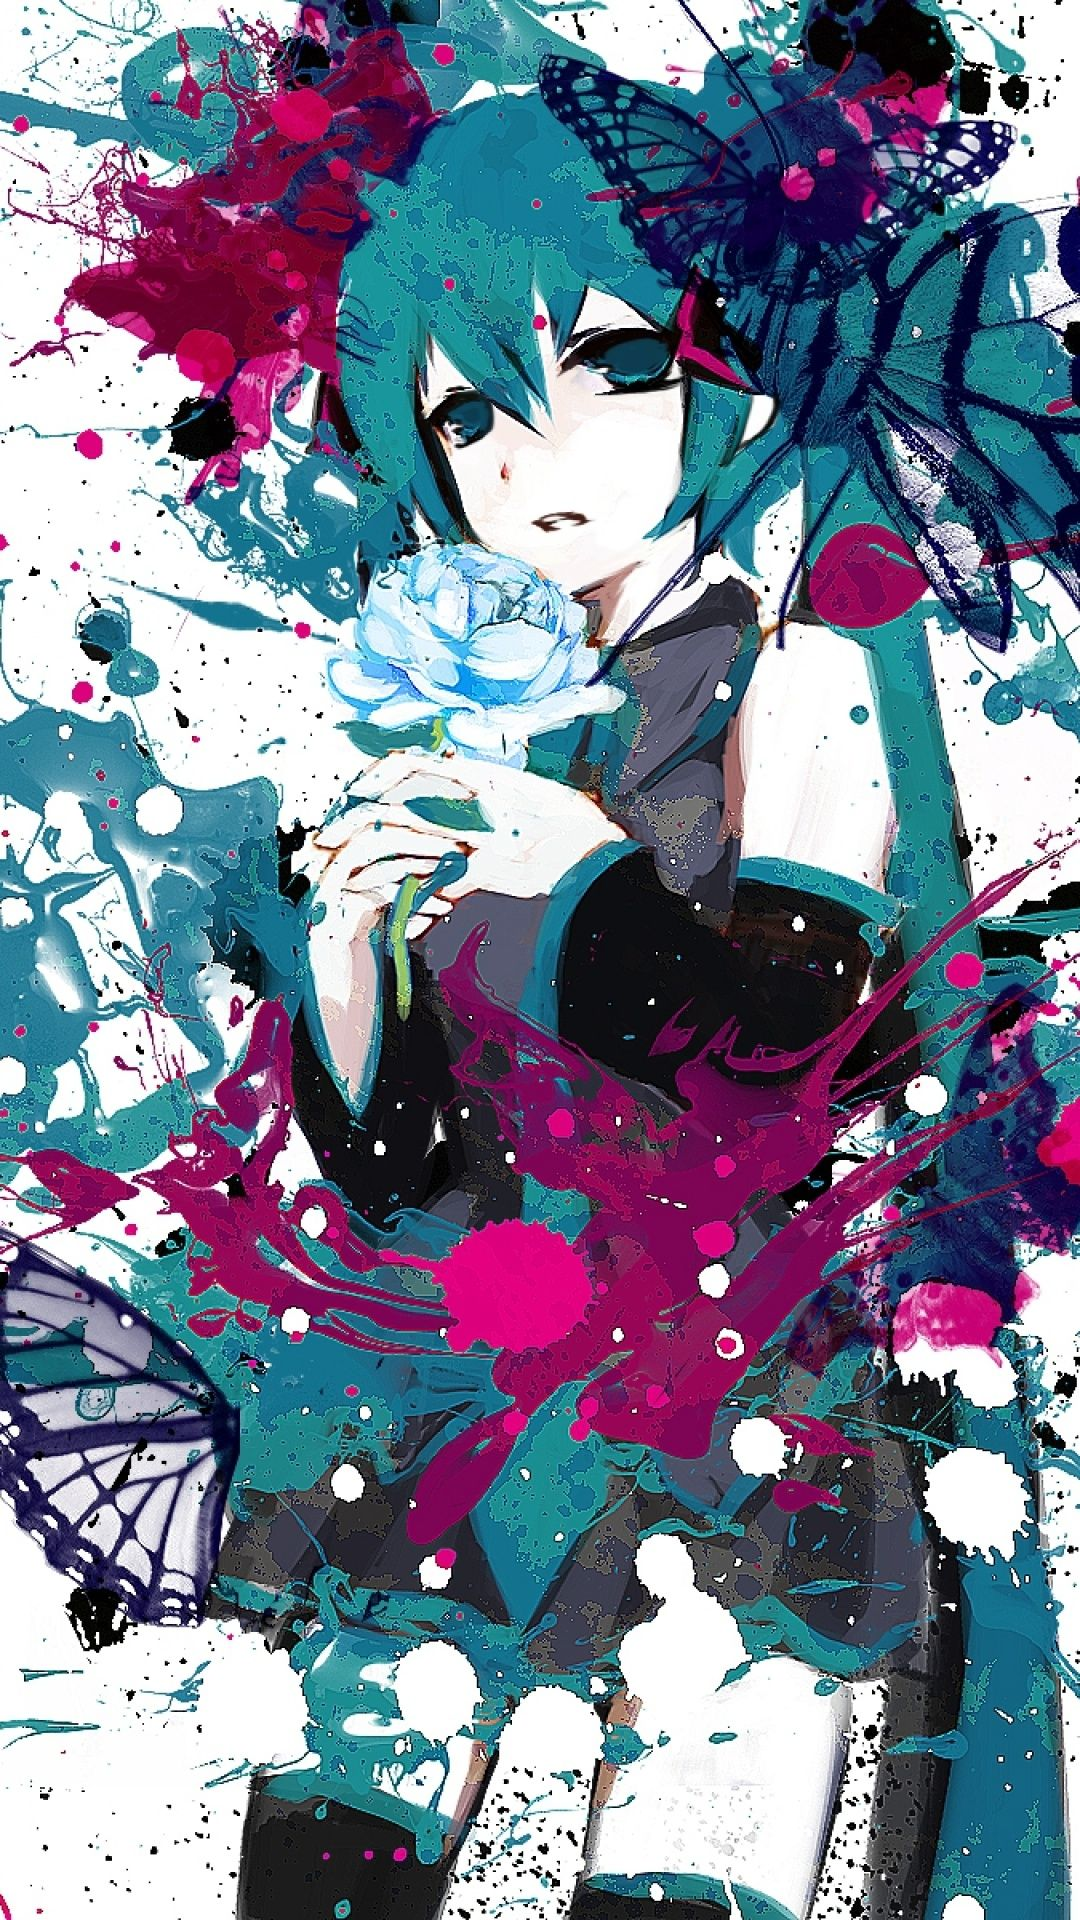 Mobile Phone 240x320 Anime Wallpapers, Desktop Backgrounds HD